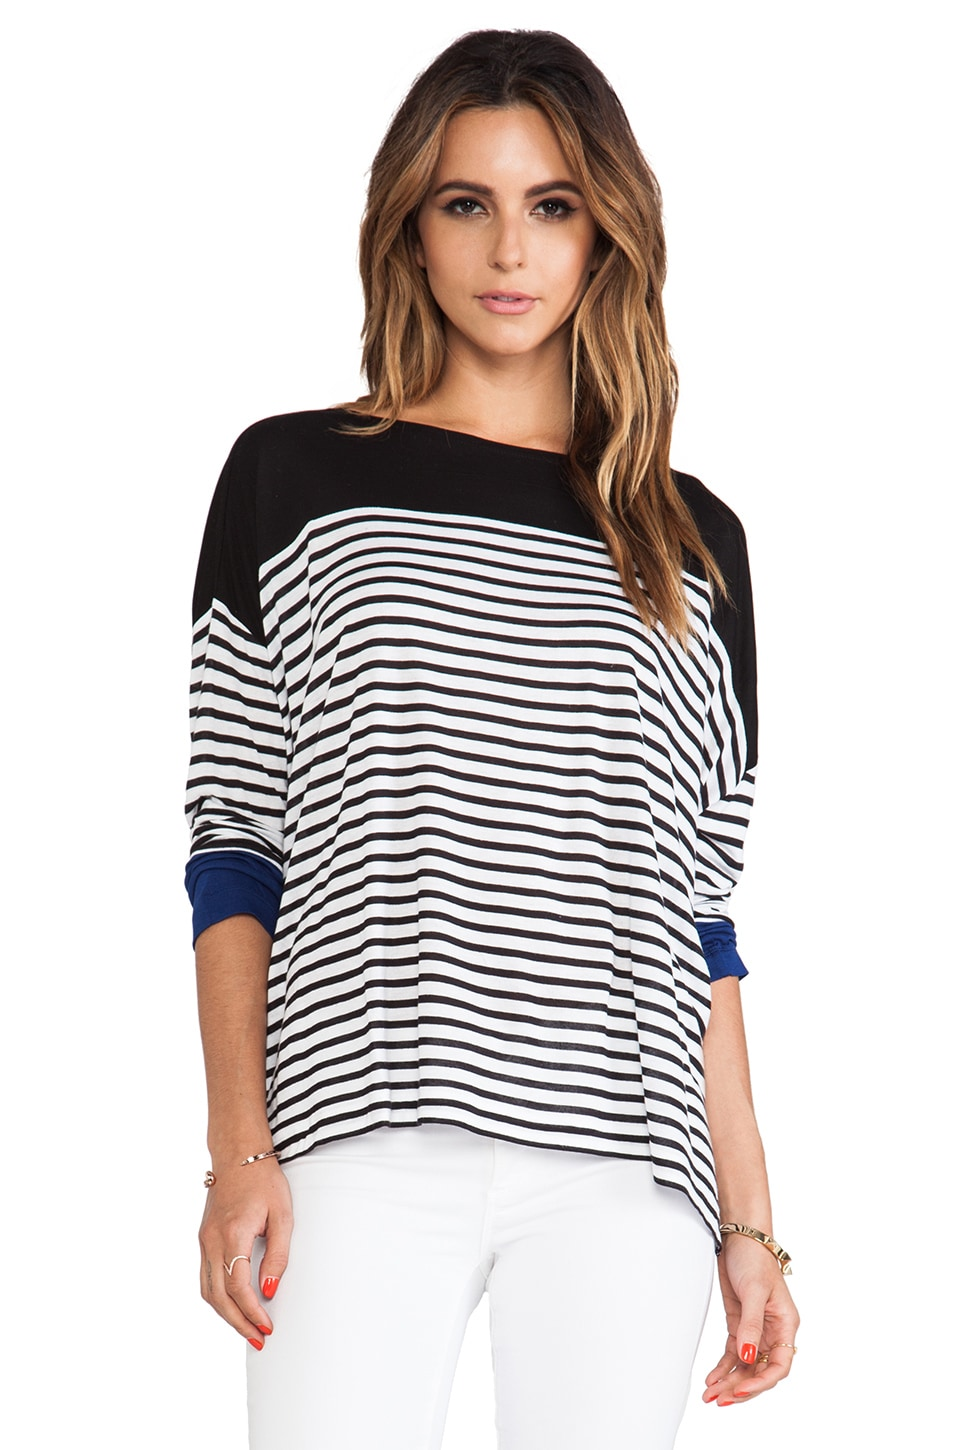 BCBGMAXAZRIA Rochelle Striped Top in White & Black